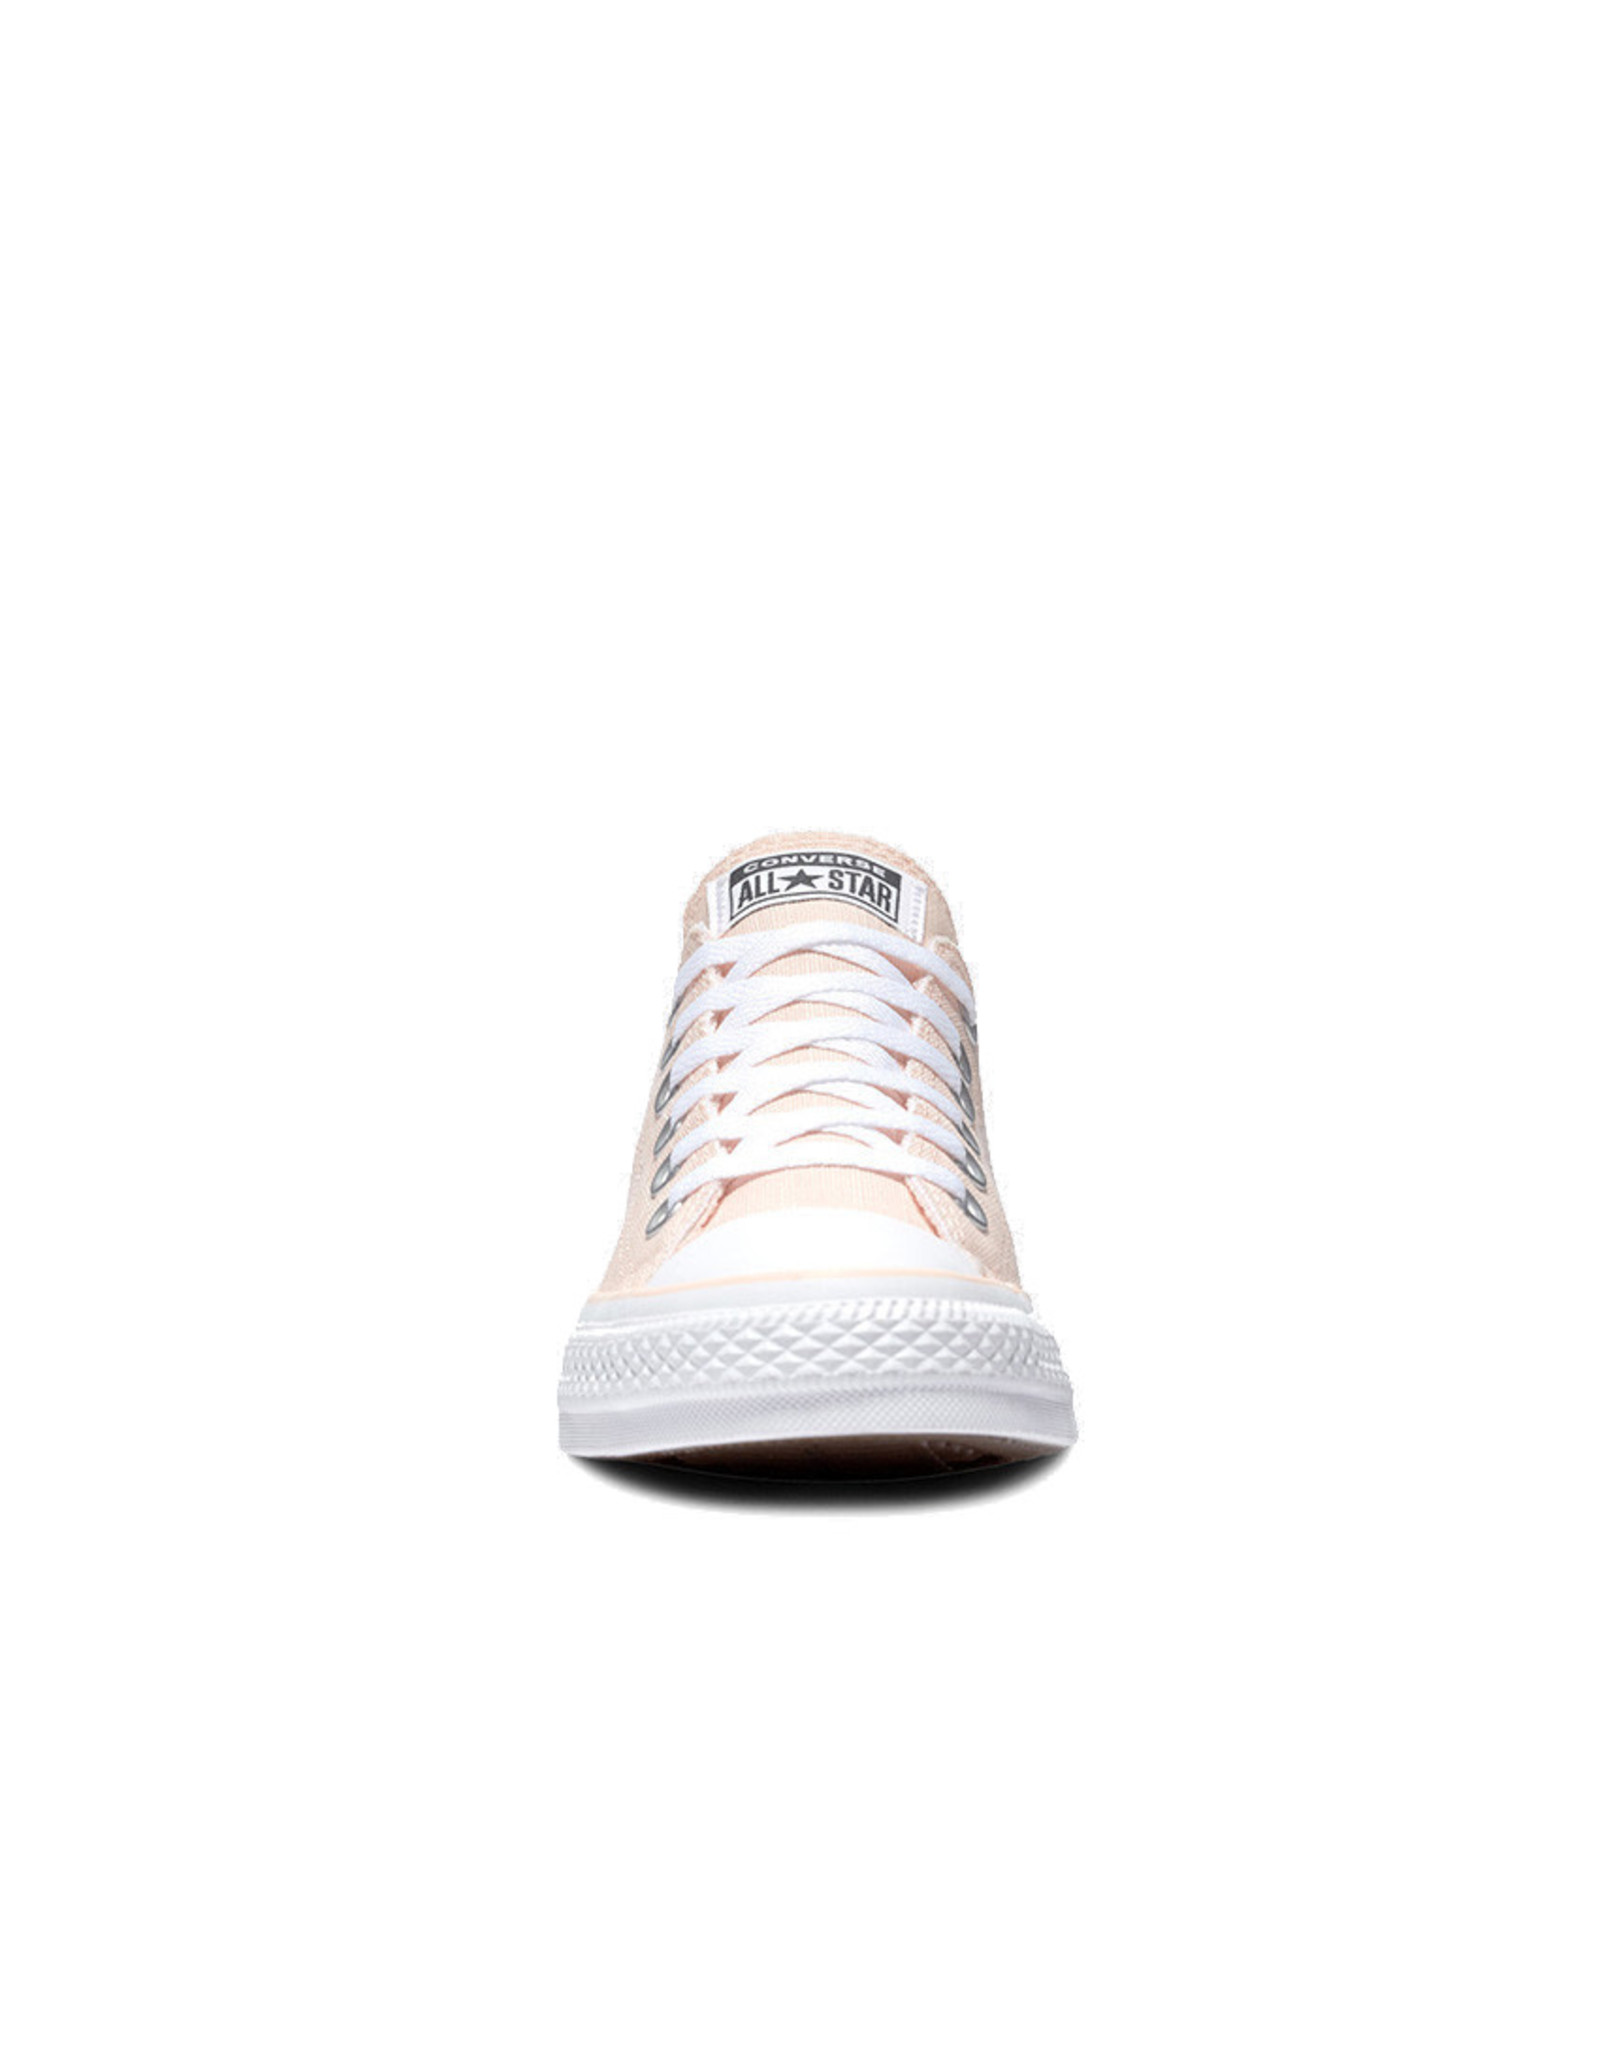 CONVERSE CHUCK TAYLOR ALL STAR OX WASHED CORAL/WHITE/WHITE C13CO-564343C